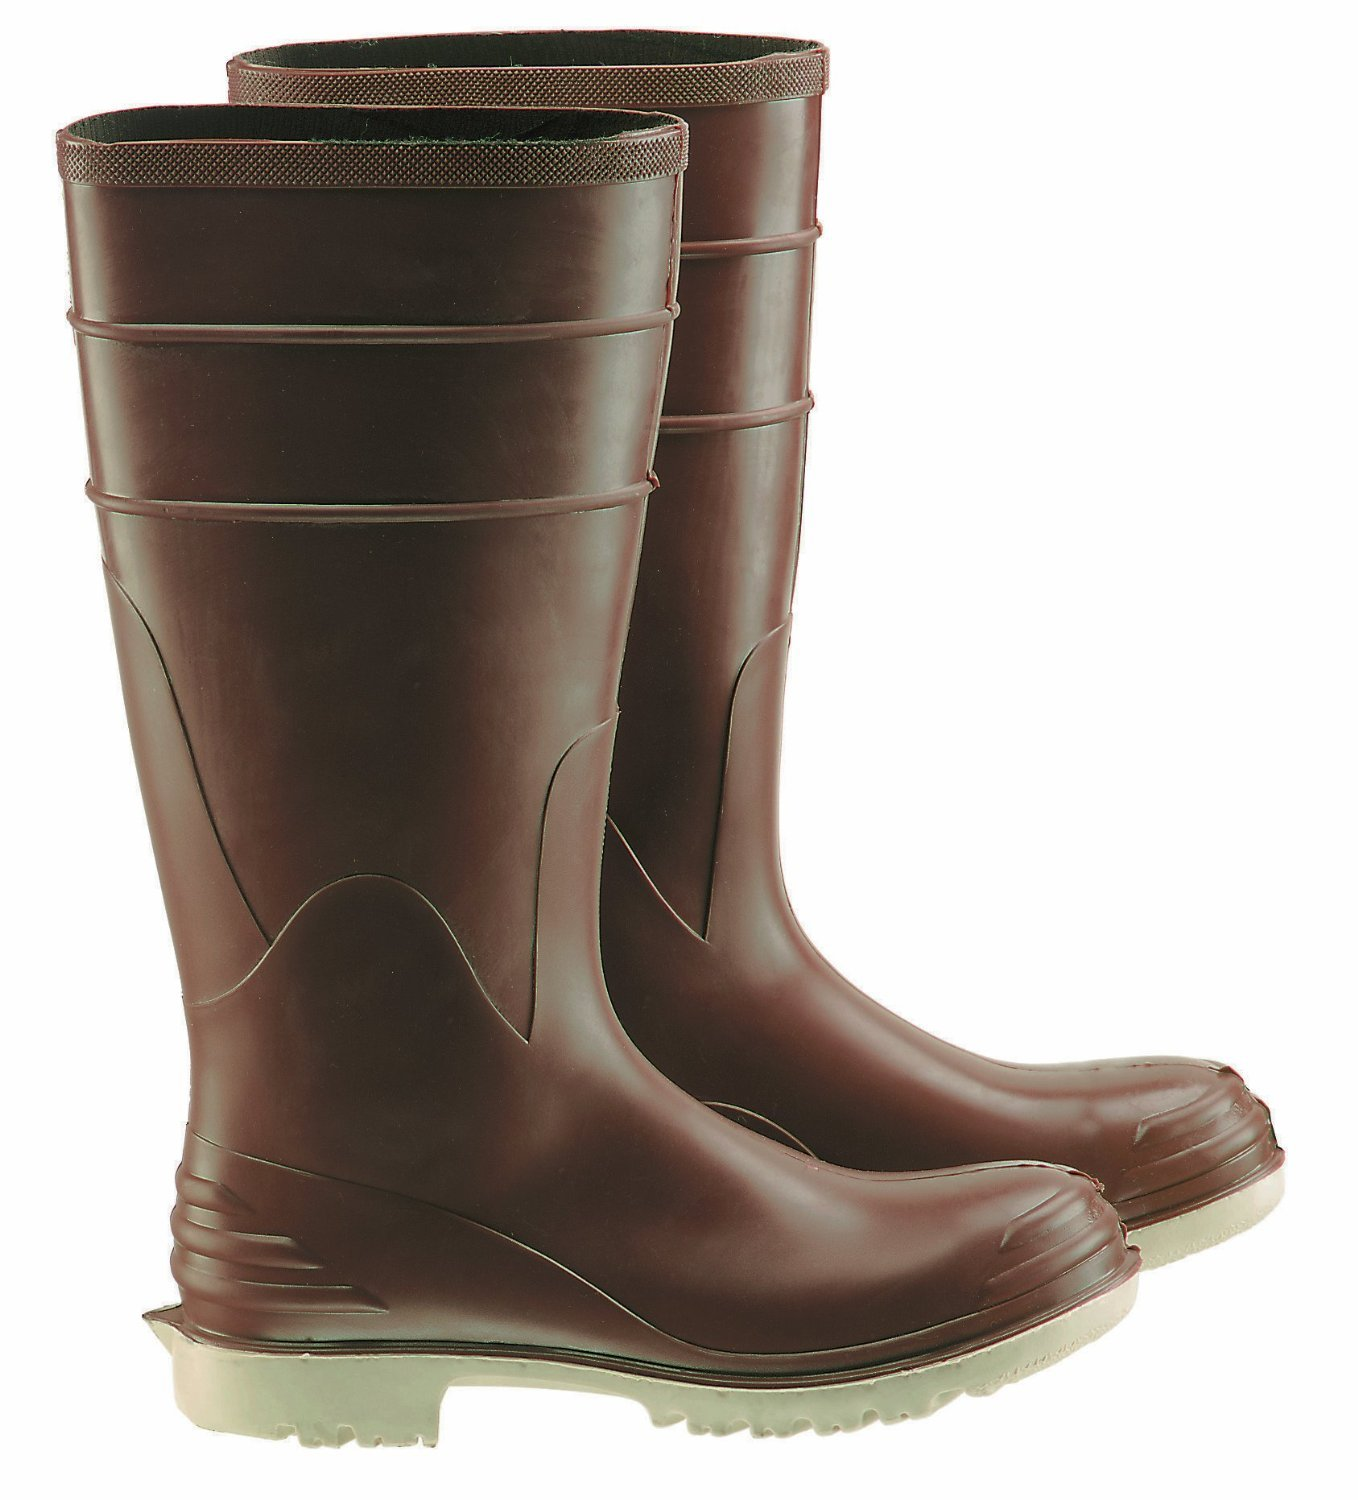 Bata Shoe 84076-08 Onguard Industries Size 8 Polymax Ultra Brown 16'' PVC Knee Boots With Ultragrip Sipe Outsole, Steel Toe And Removable Insole, English, 15.34 fl. oz., Plastic, 16'' x 8'' x 1''